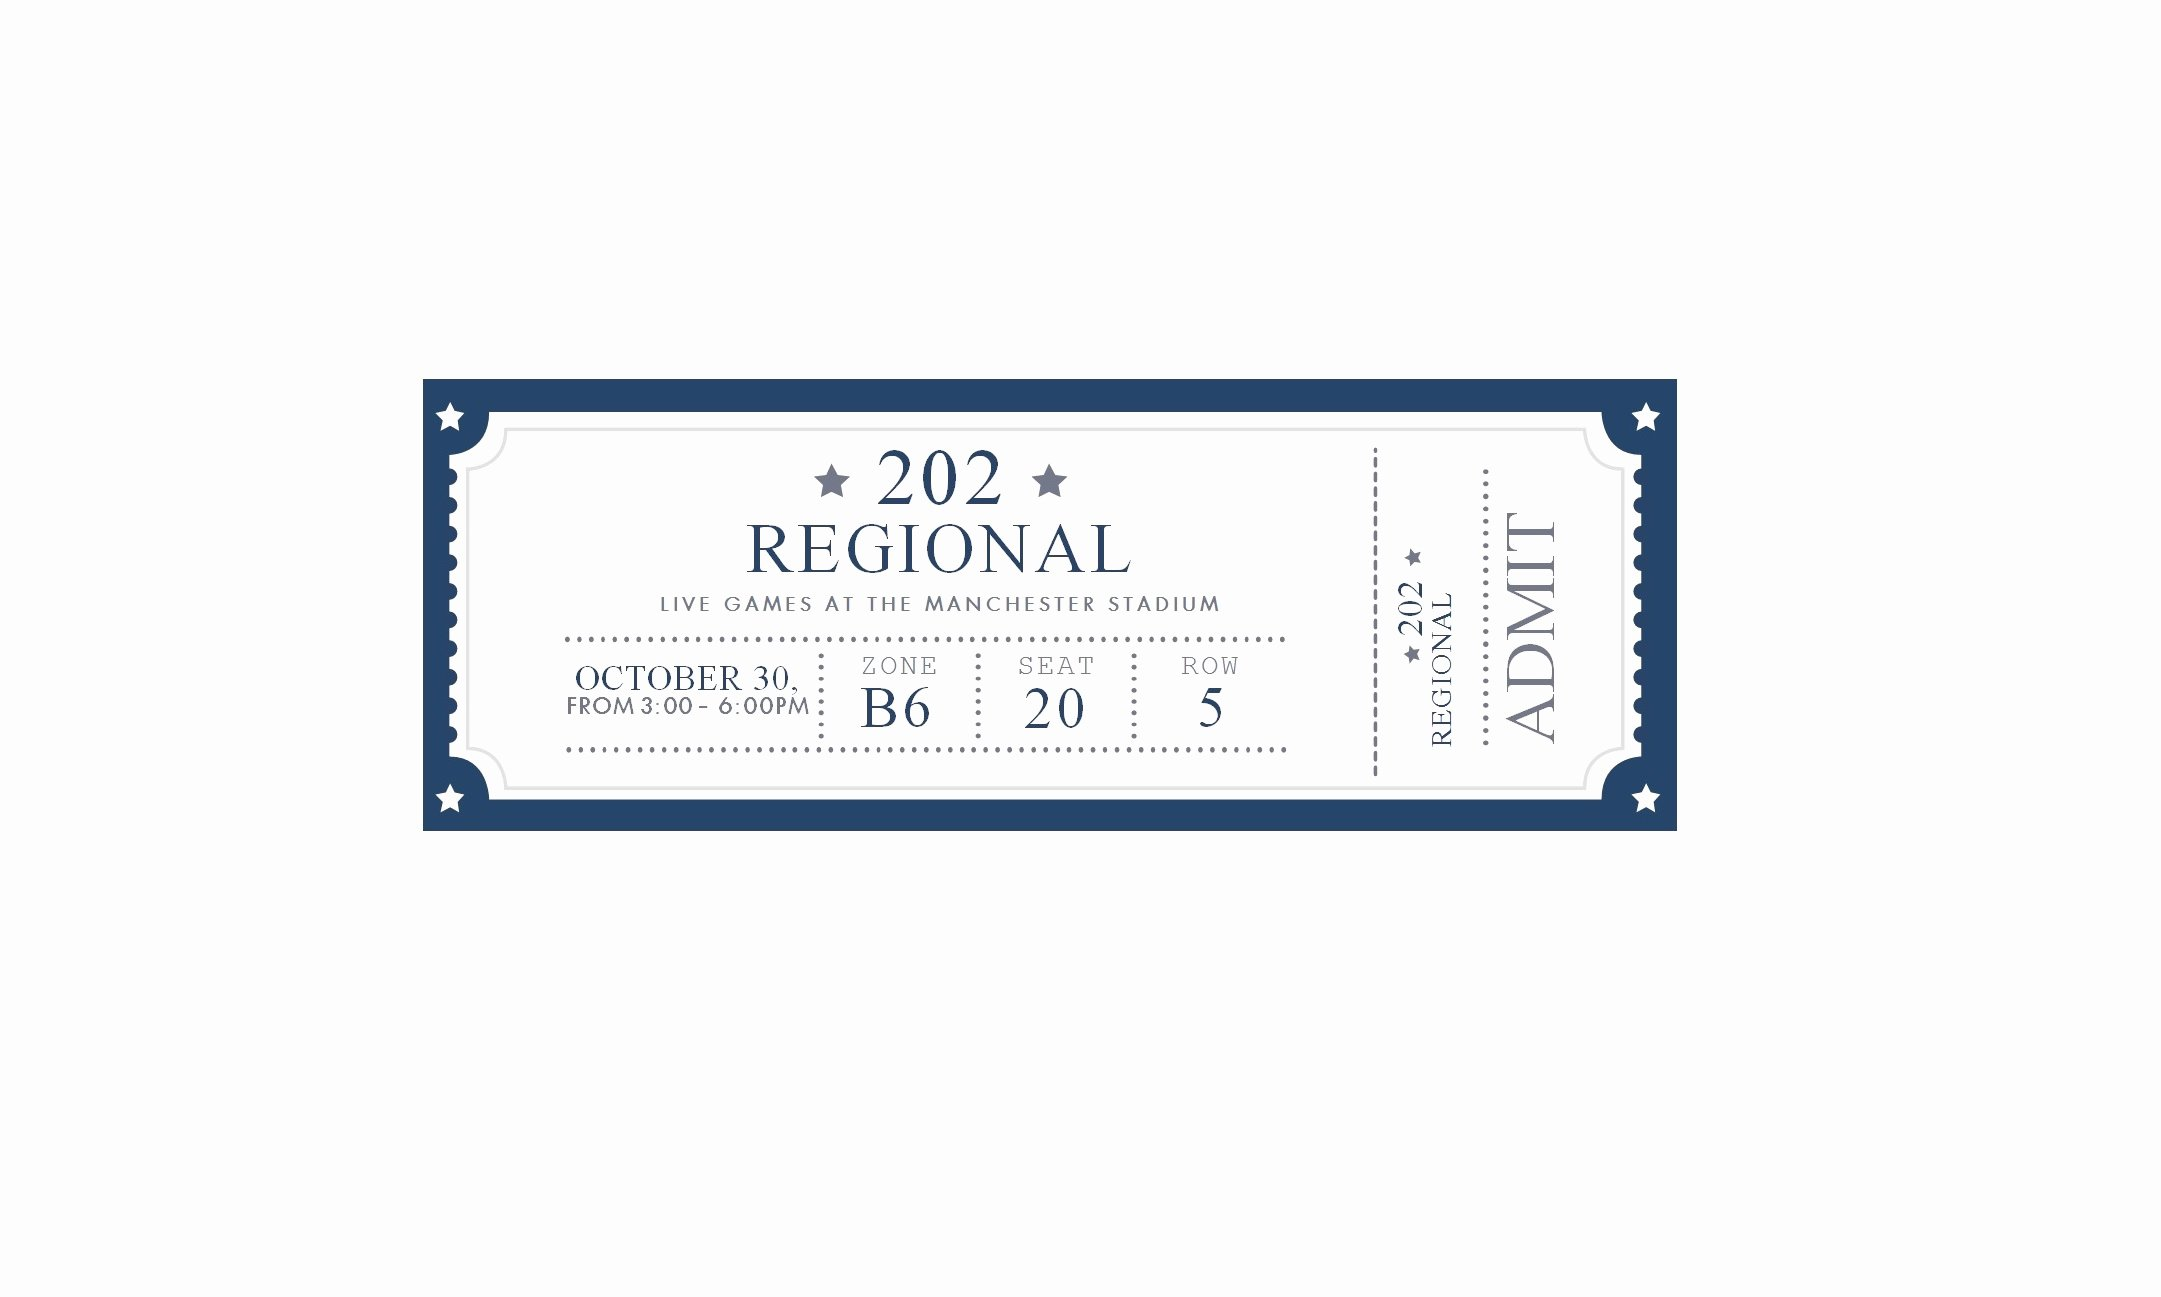 Free event Ticket Template Inspirational 22 Free event Ticket Templates Ms Word Template Lab